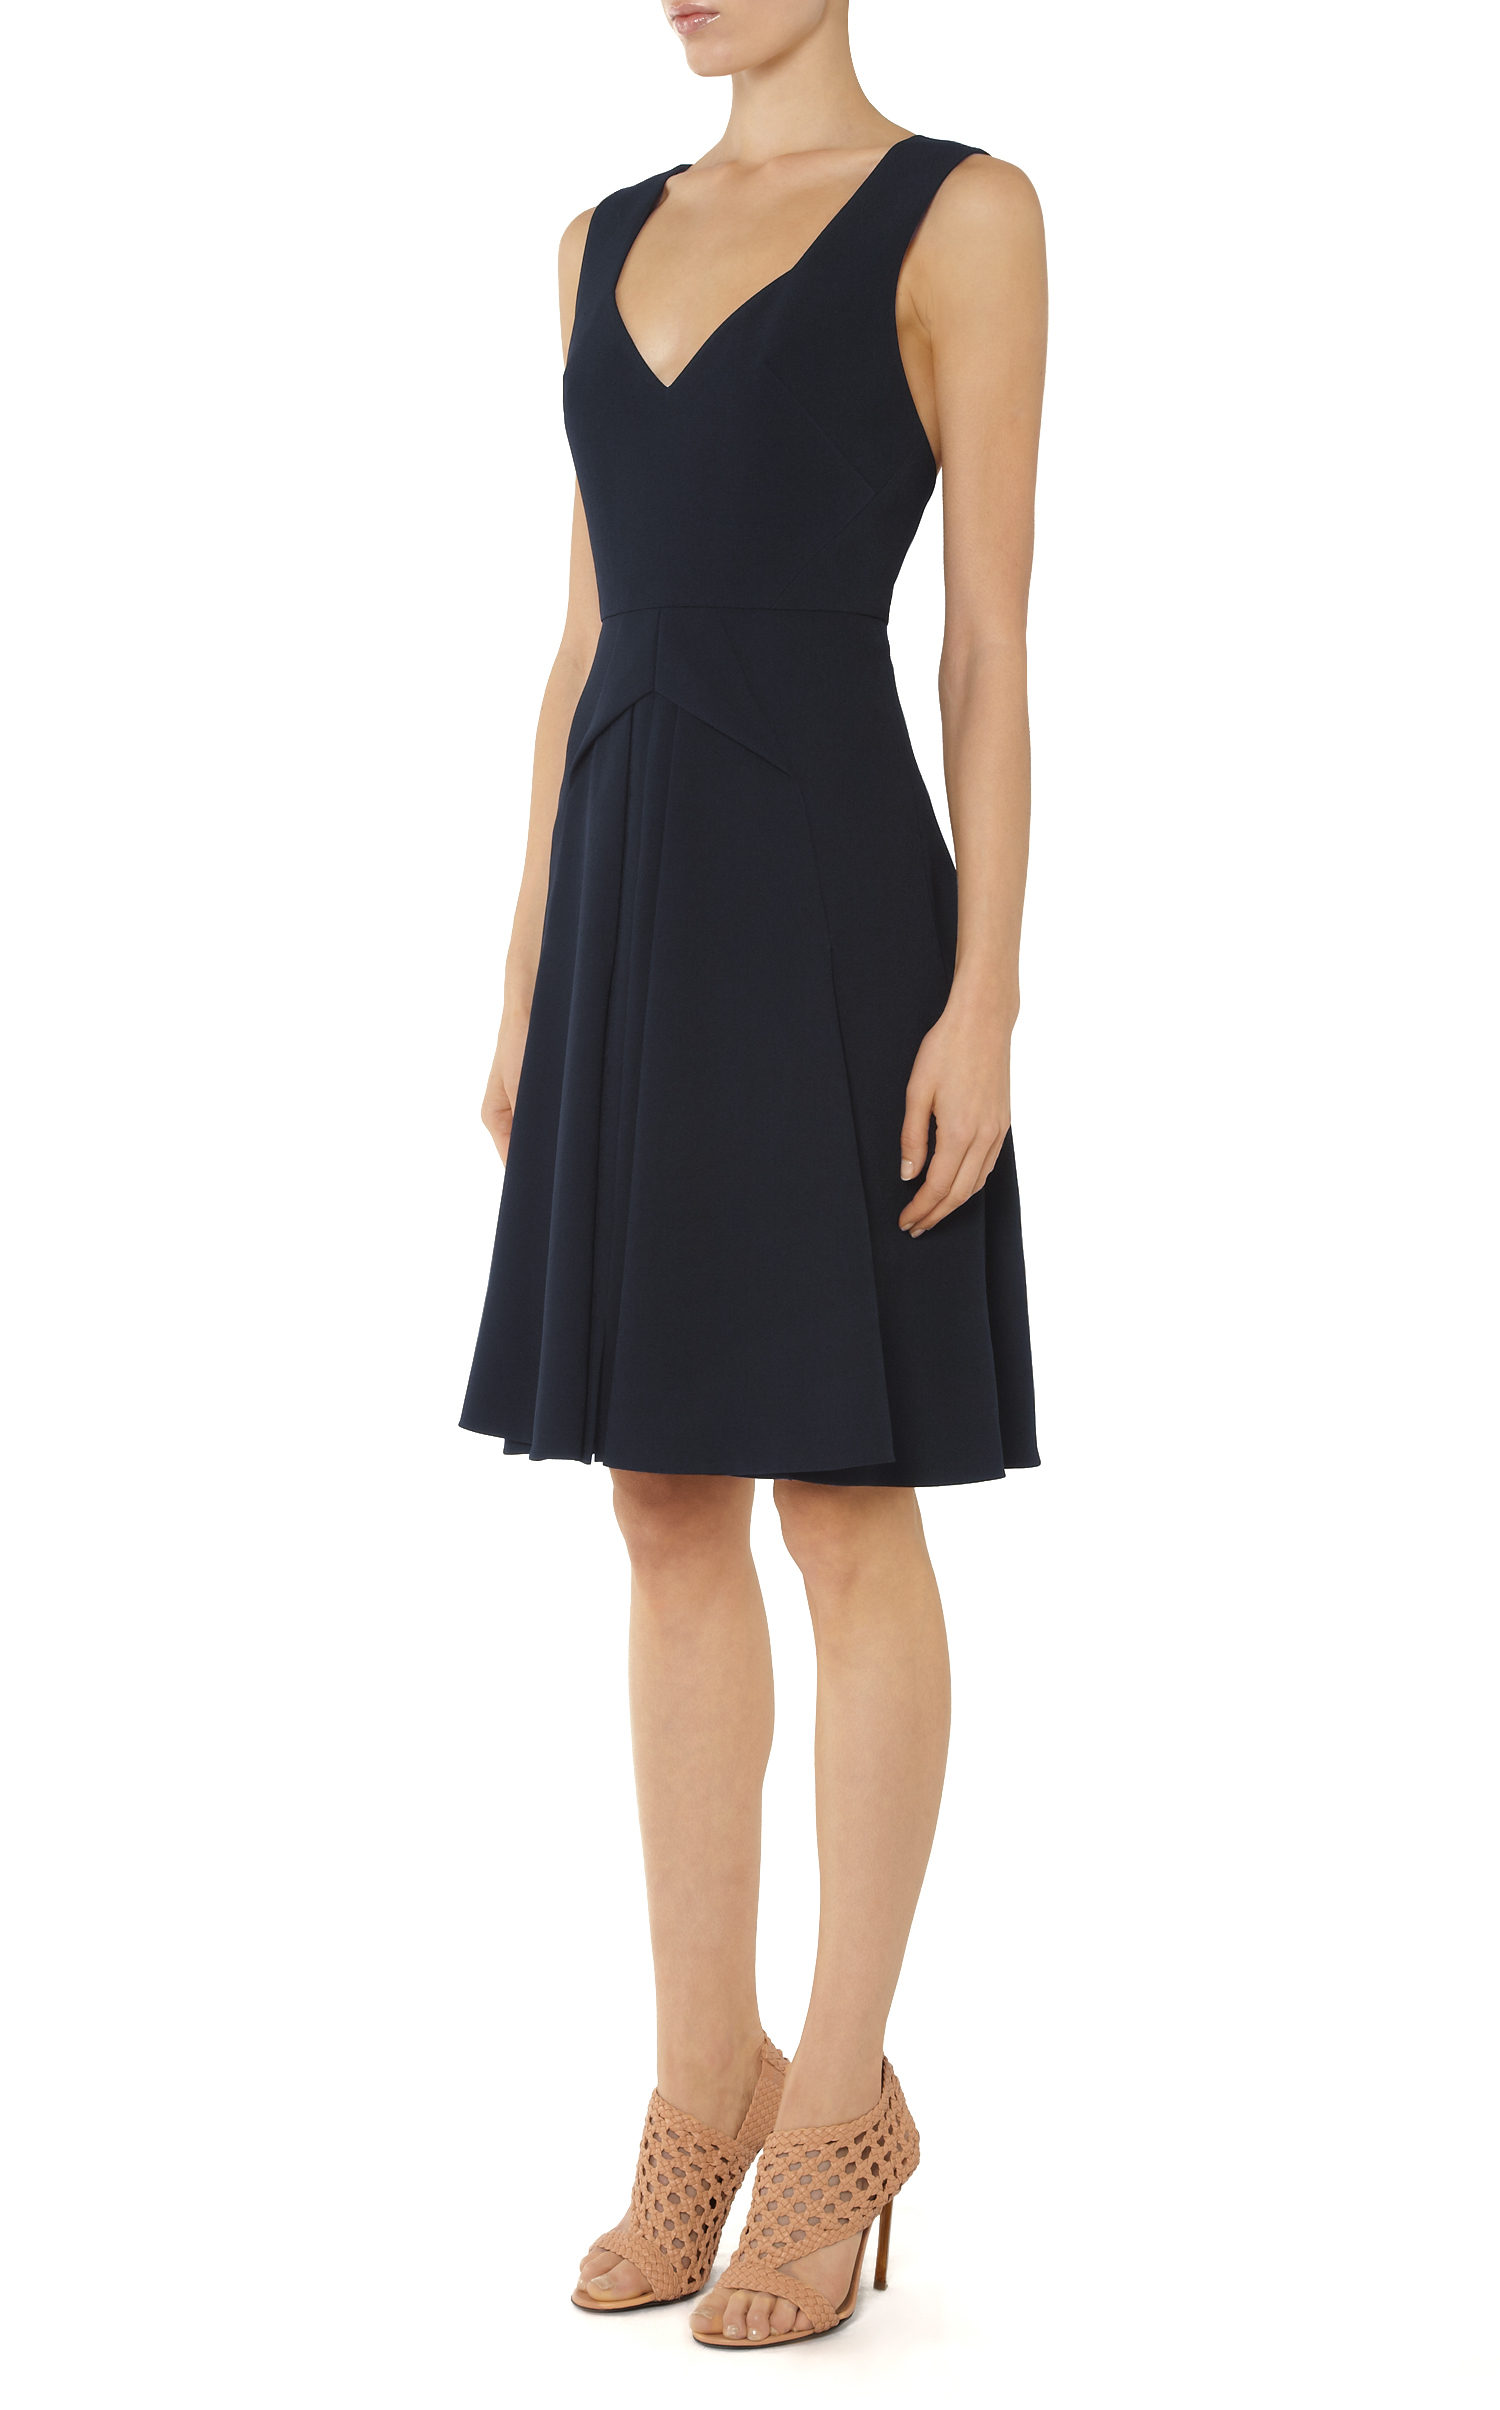 Dress is composed of a navy blue hued crepe fabric that offers a form hugging fit with a moderate stretch. Includes a smooth knit lining. Model is 5'7 with a 34